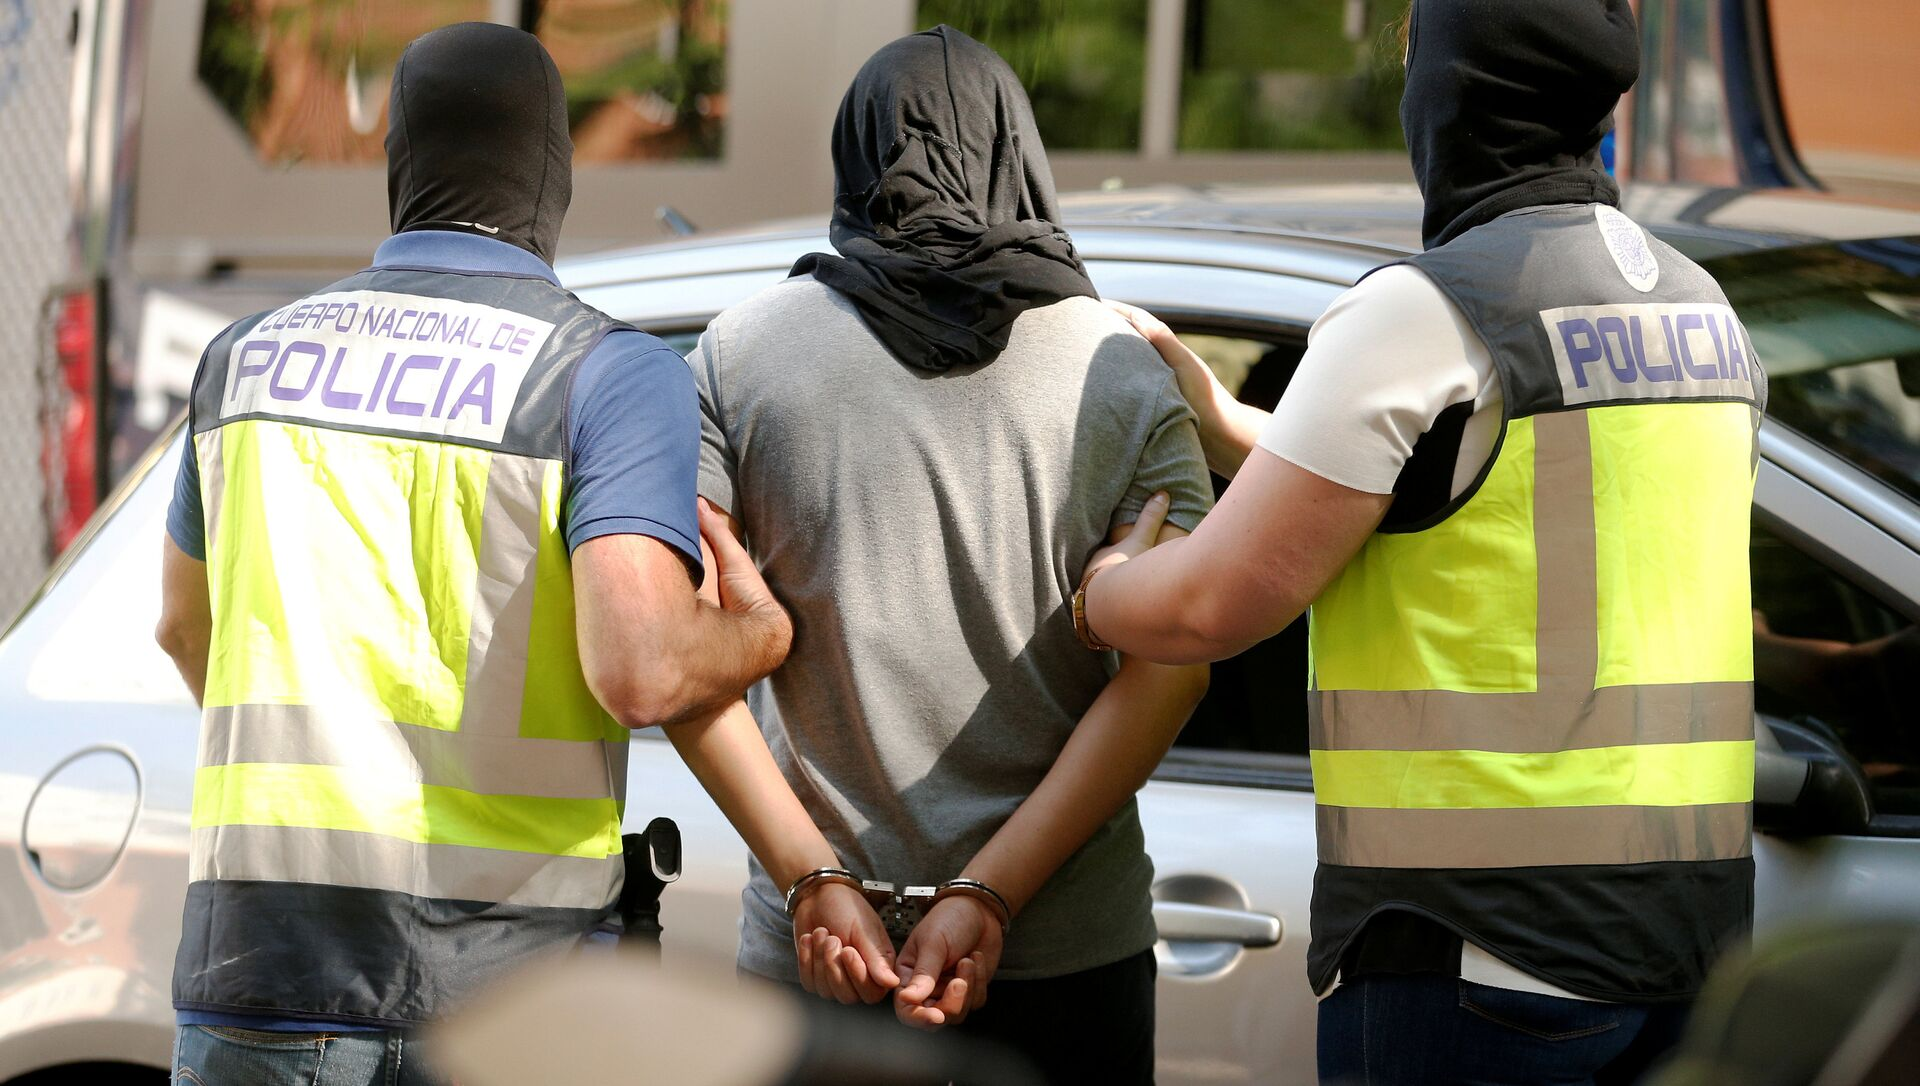 Police lead away a suspect from an apartment block during a raid in which they arrested a 32-year-old Moroccan they said was highly radicalised, in Madrid, Spain June 21, 2017 - Sputnik 日本, 1920, 20.07.2021